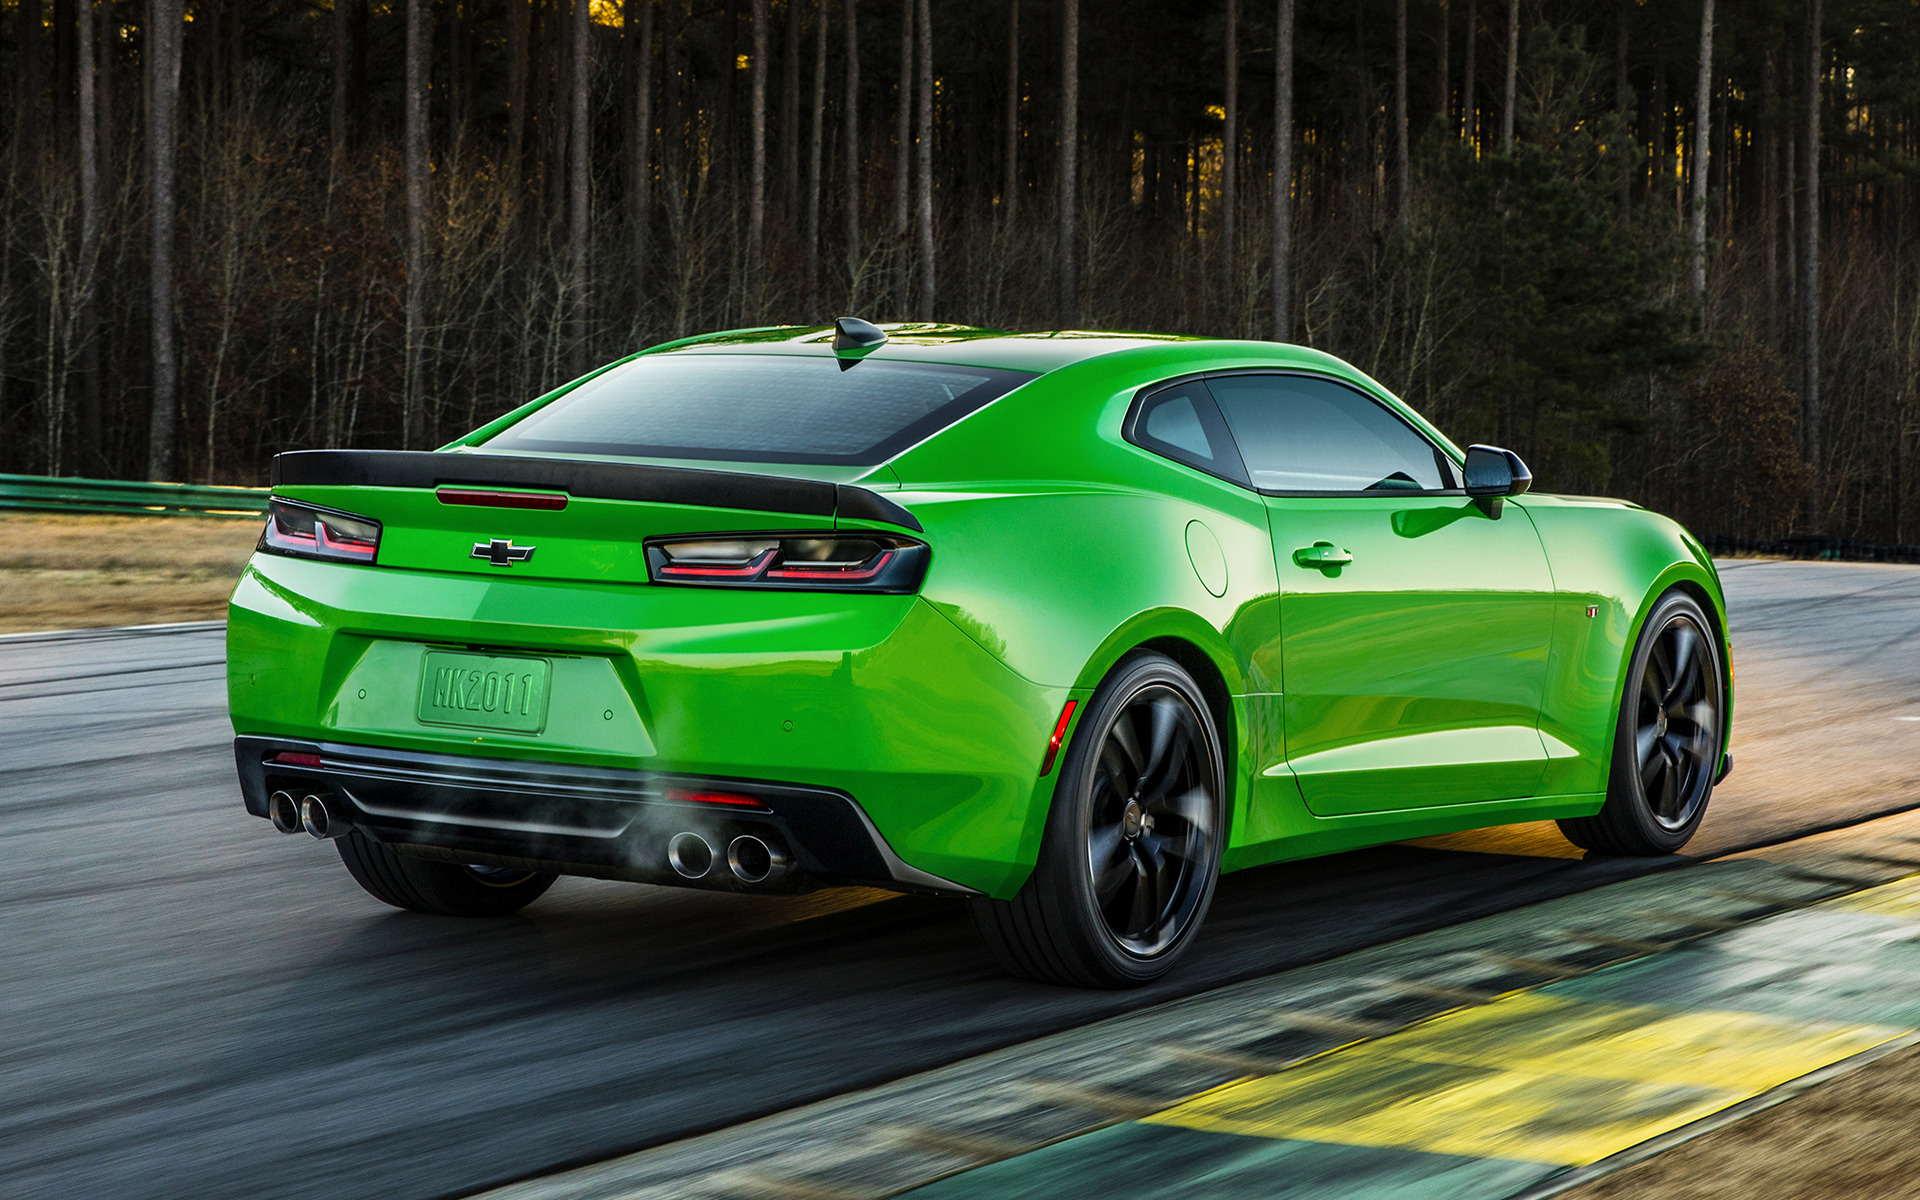 Benz Car Wallpapers For Desktop 2017 Chevrolet Camaro 1le Wallpapers And Hd Images Car